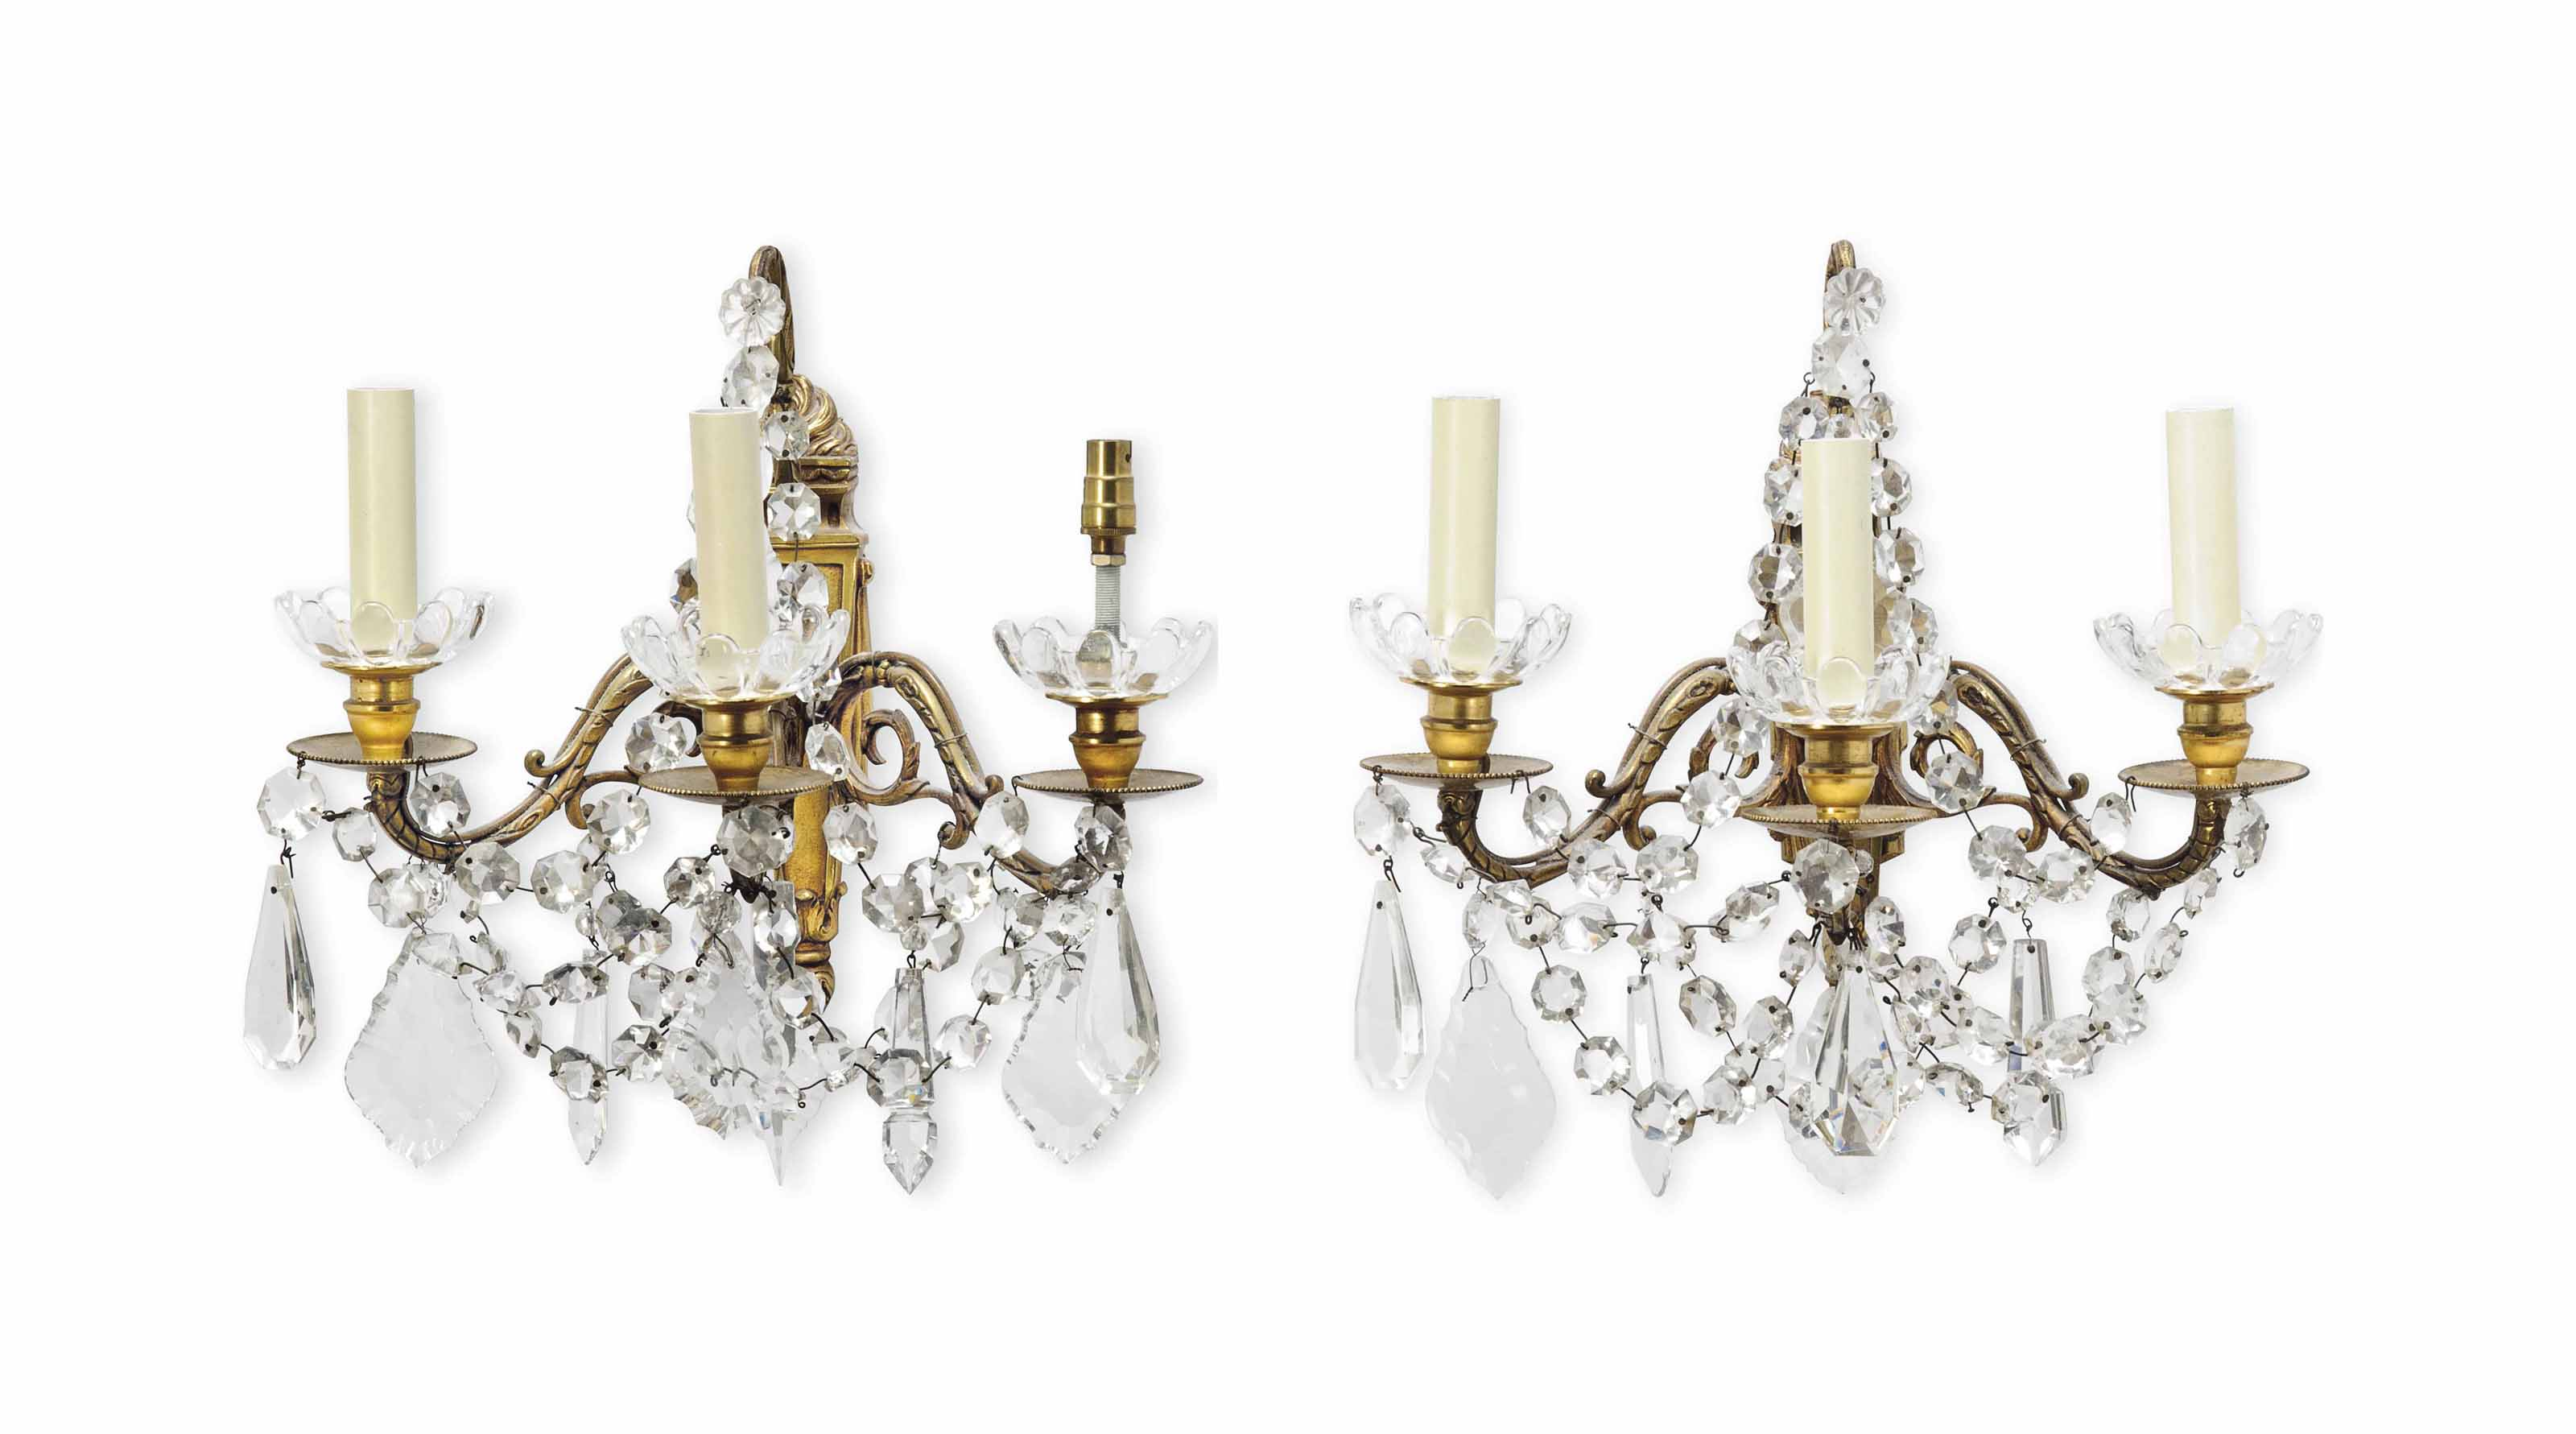 A PAIR OF FRENCH GILT-BRONZE AND GLASS THREE-LIGHT WALL APPLIQUES